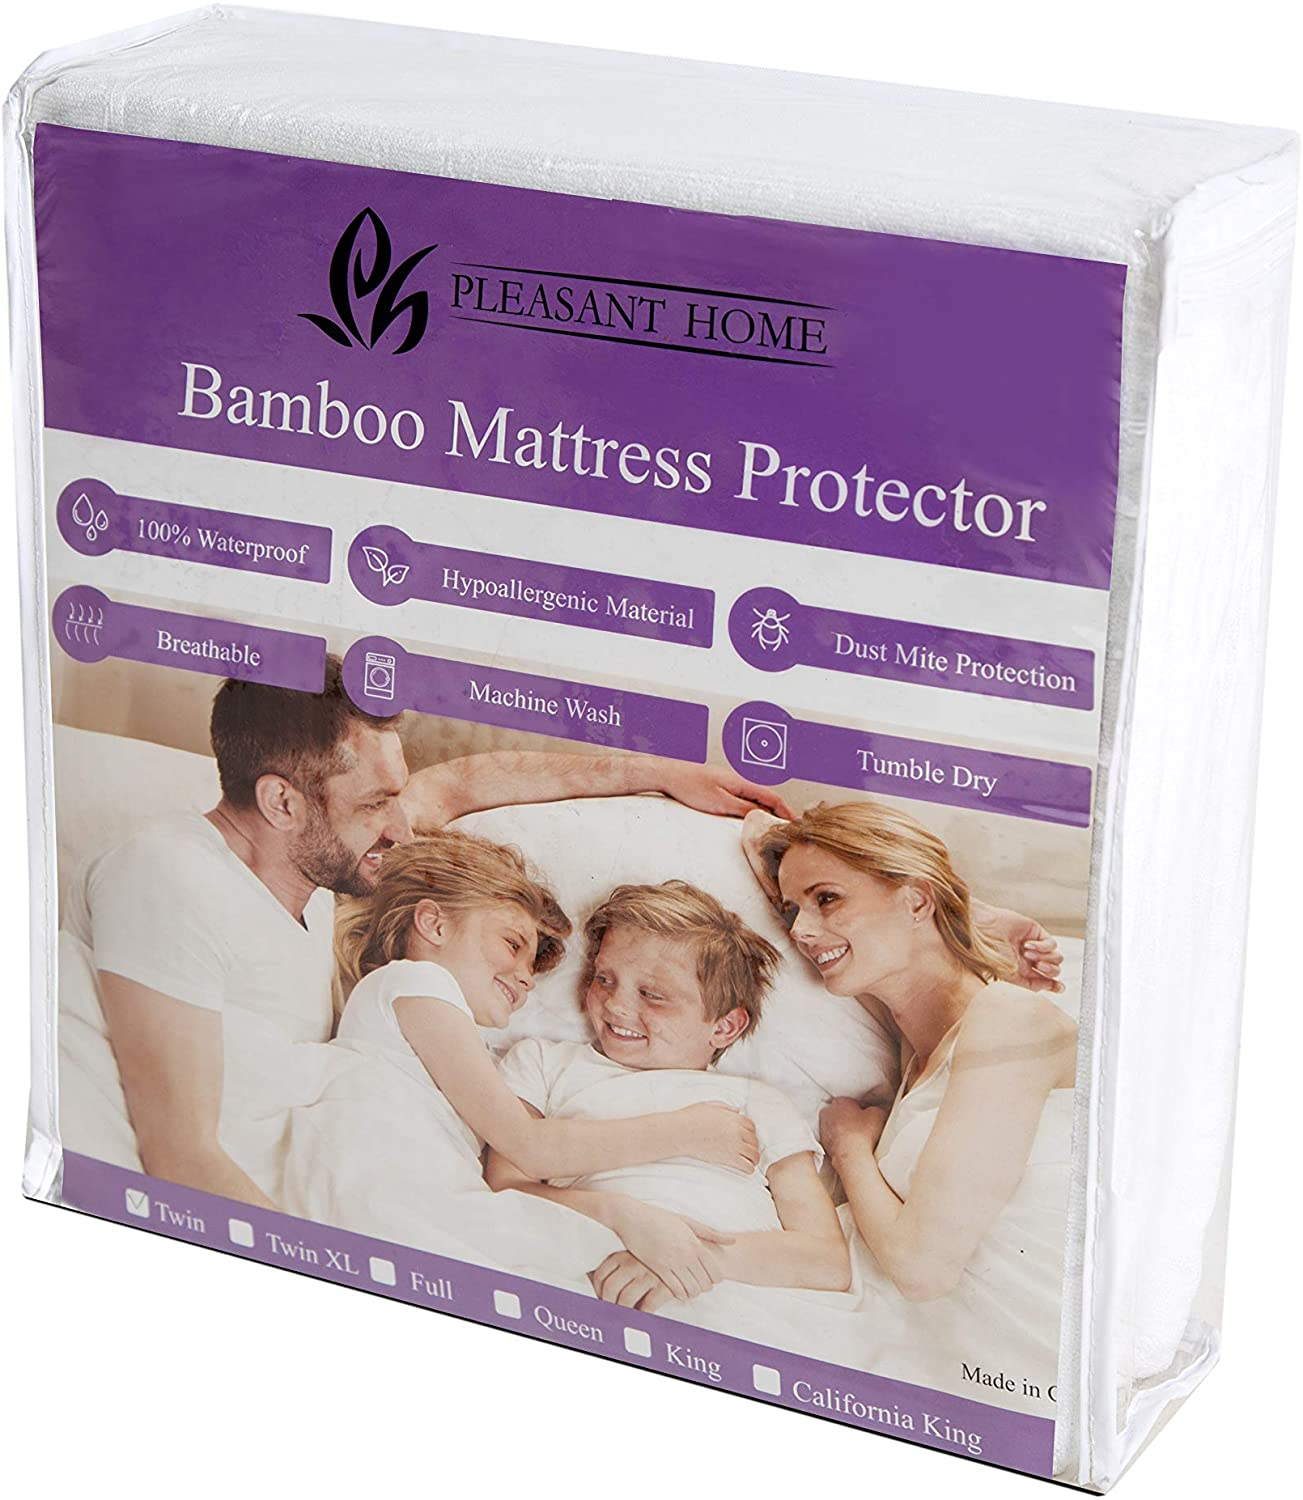 "Pleasant Home Mattress Protector, Jacquard Bamboo Waterproof Cover Pad – Fitted Sheet Style, Hypoallergenic, Breathable, 15"" Deep Pocket with Stretch Skirt Fits Any Size Mattress, White (Twin)"